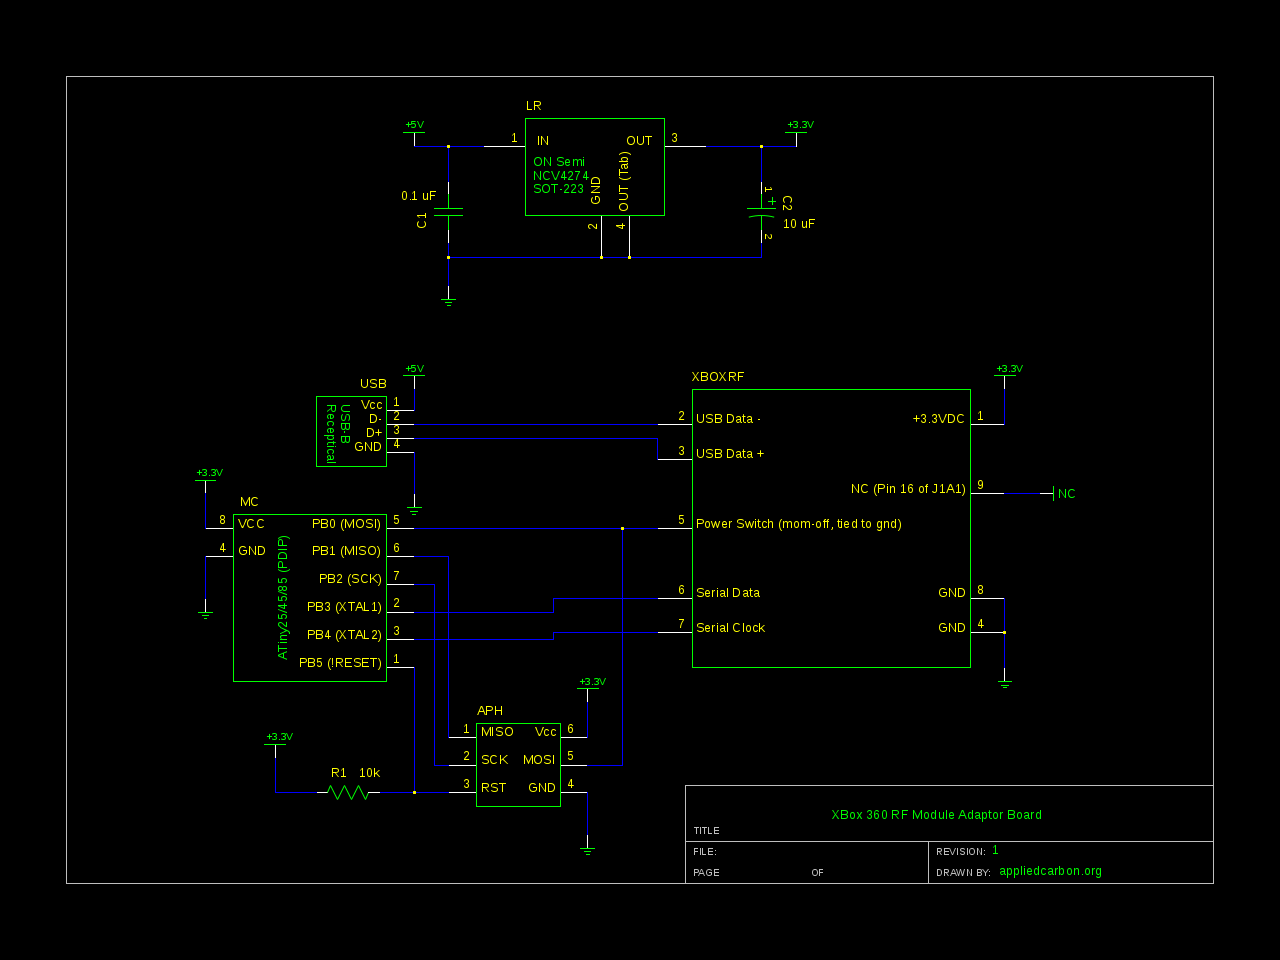 Connecting a salvaged Xbox 360 RF module to a desktop computer on xbox insides diagram, xbox controller, xbox 360 slim schematics, xbox one connections diagram, matrix diagram, xbox one schematics, ps3 schematic diagram, xbox x-clamp fix, xbox one wiring diagrams, xbox external wiring diagram, ps3 controller diagram, xbox power supply diagram, xbox circuit board diagram, playstation 4 controller diagram, xbox console diagram, nintendo 3ds schematics diagram, playstation 3 diagram, xbox motherboard diagram, xbox bill gate japanese poster, xbox instruction manual pdf,